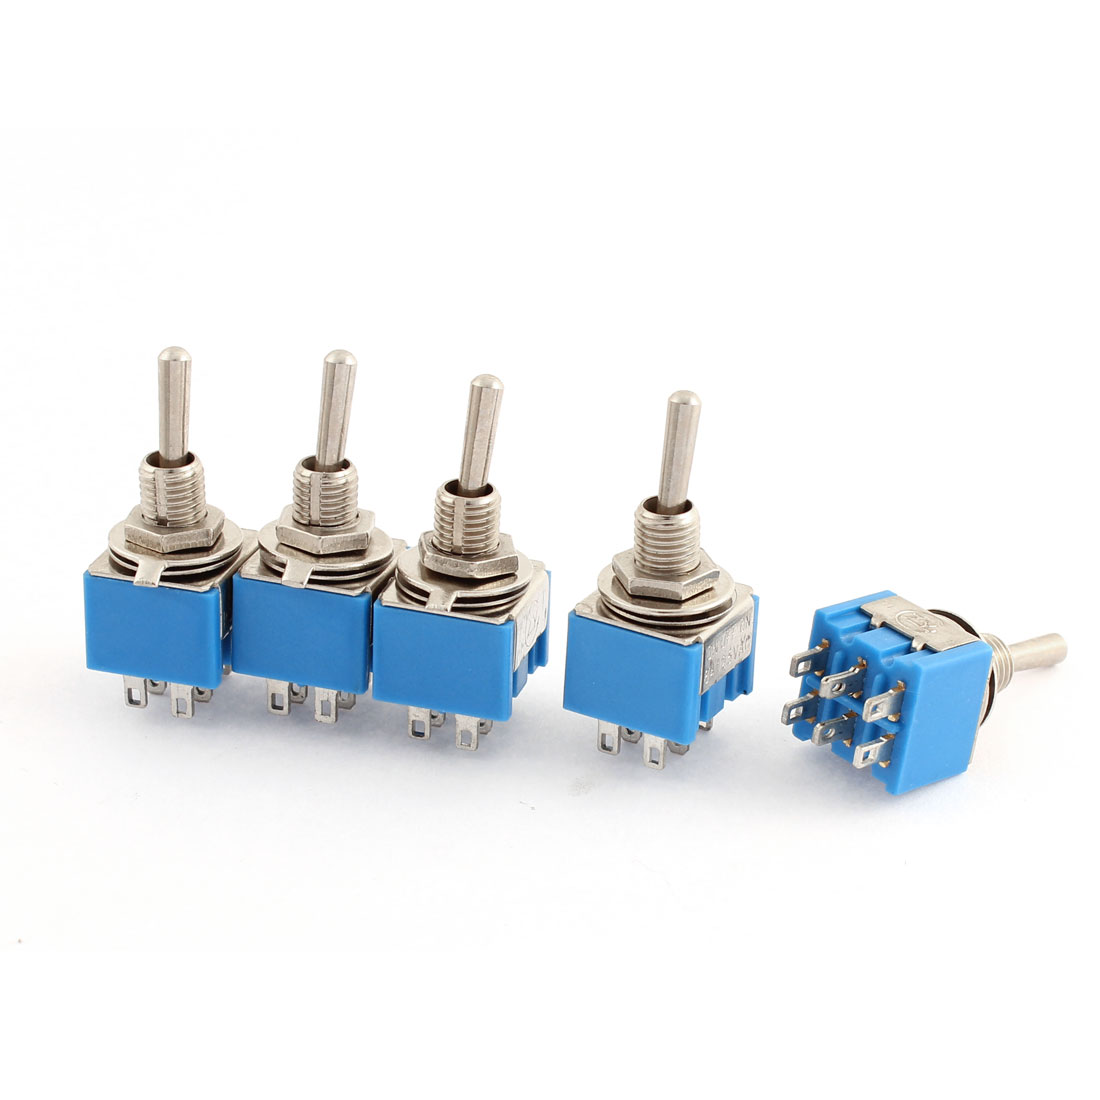 AC 125V 6A 3-Position ON-OFF-ON 6 Terminals Latching Toggle Switch 5 Pcs